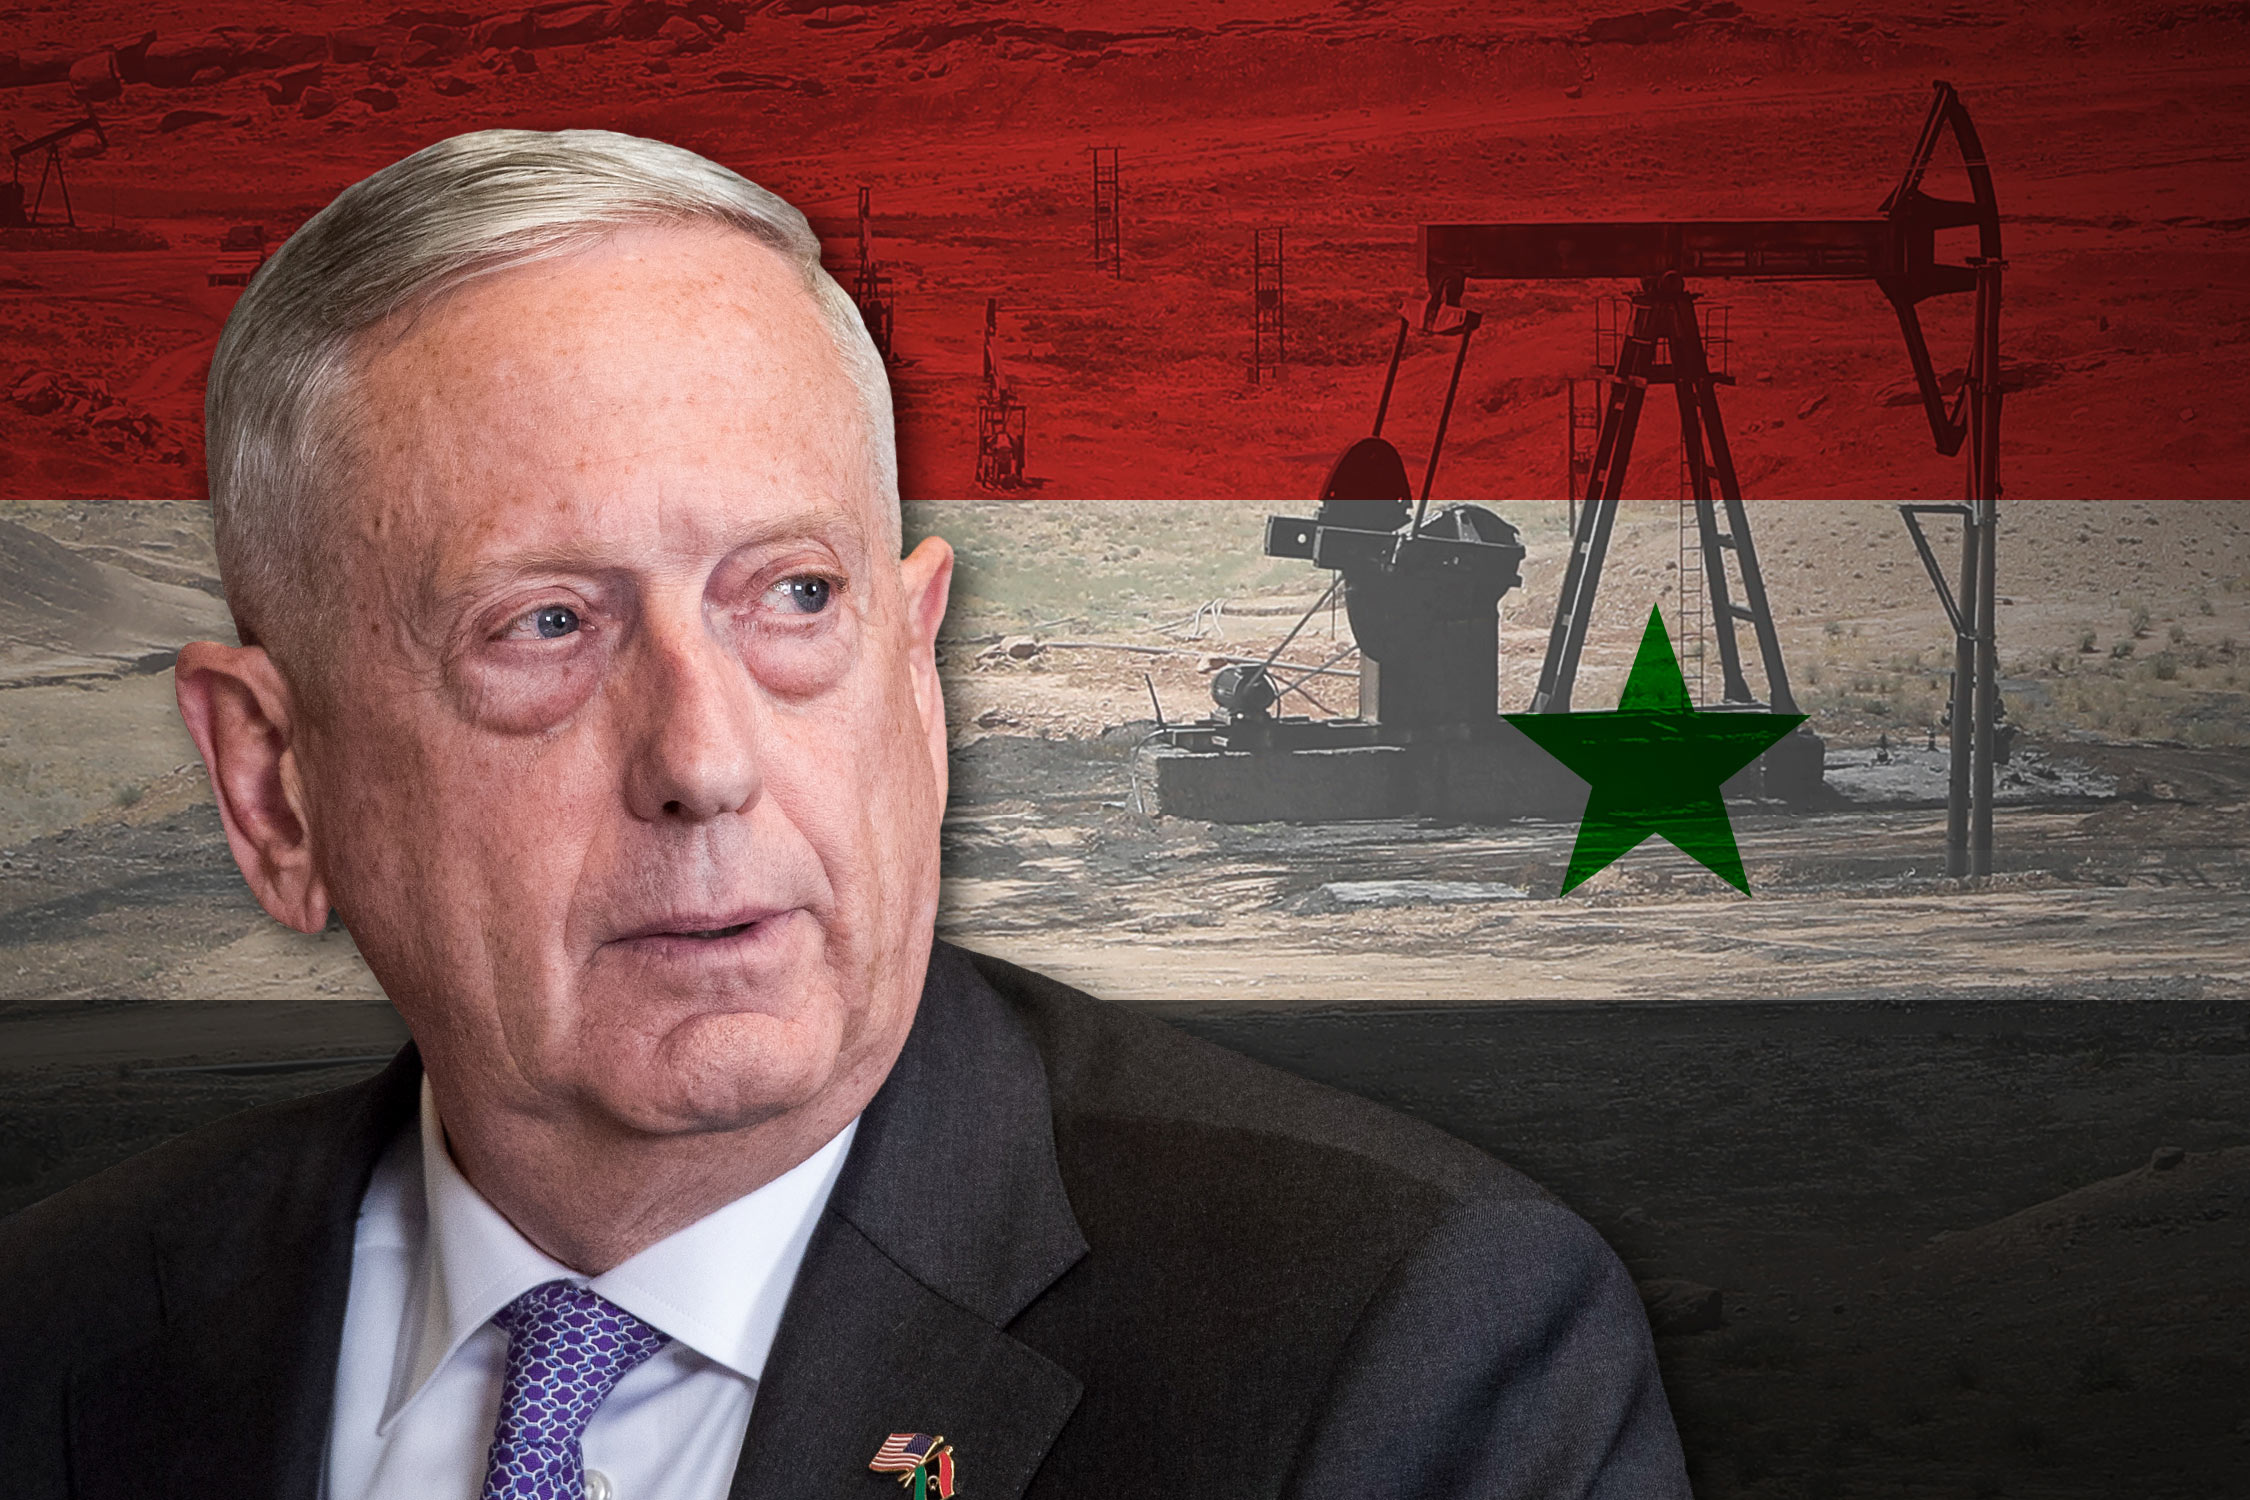 US Secretary of Defense James Mattis and Syria's oil